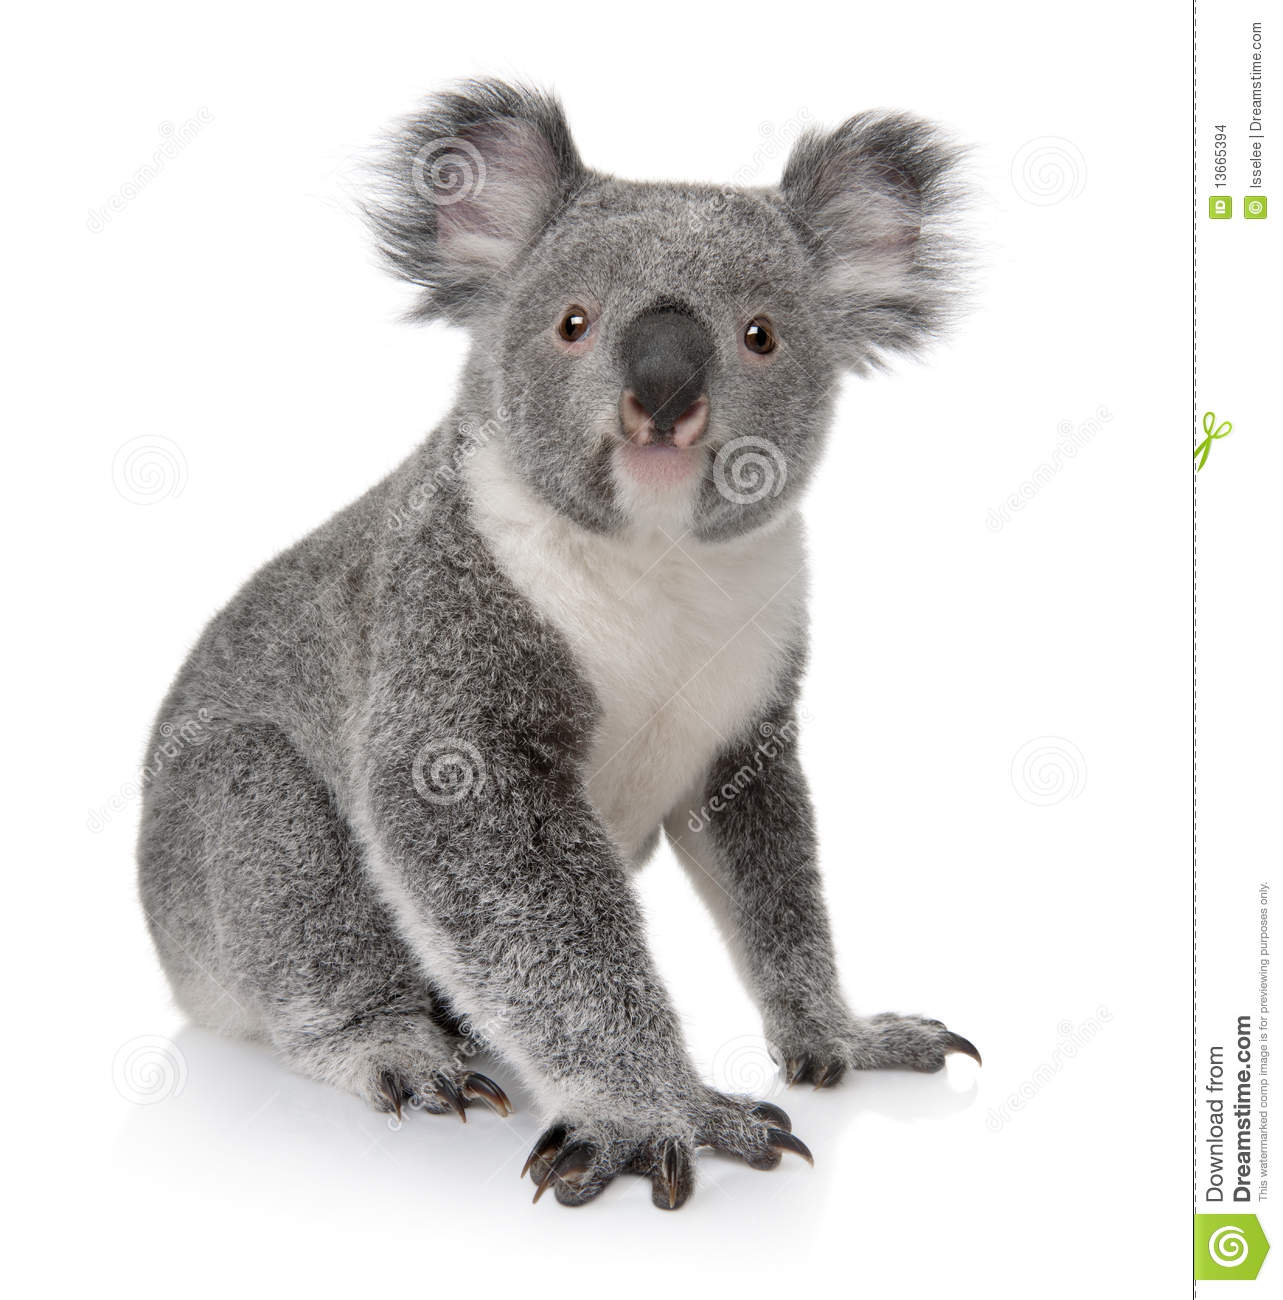 Young koala, Phascolarctos cinereus, 14 months old, sitting in front ...